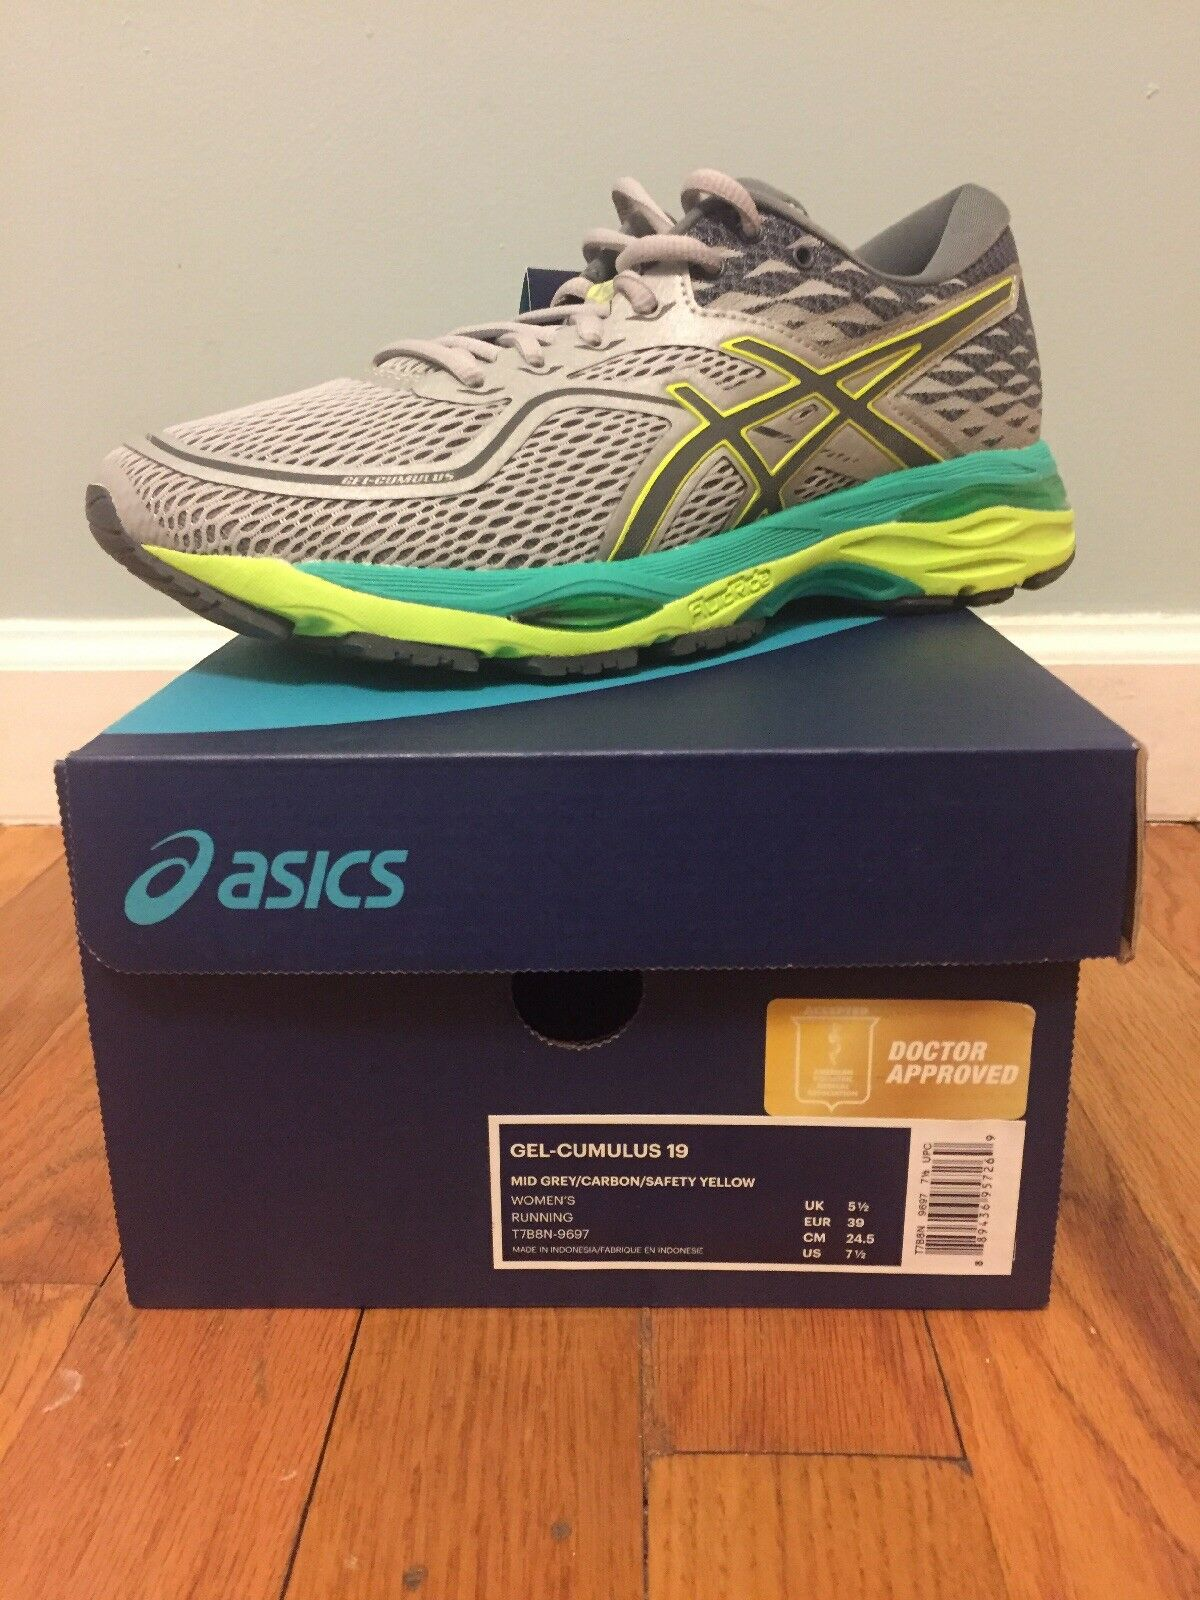 New Asics T7B8N 9697 Cumulus 19 Mid Grey / Yellow Women's Running Shoes 7.5 US Brand discount